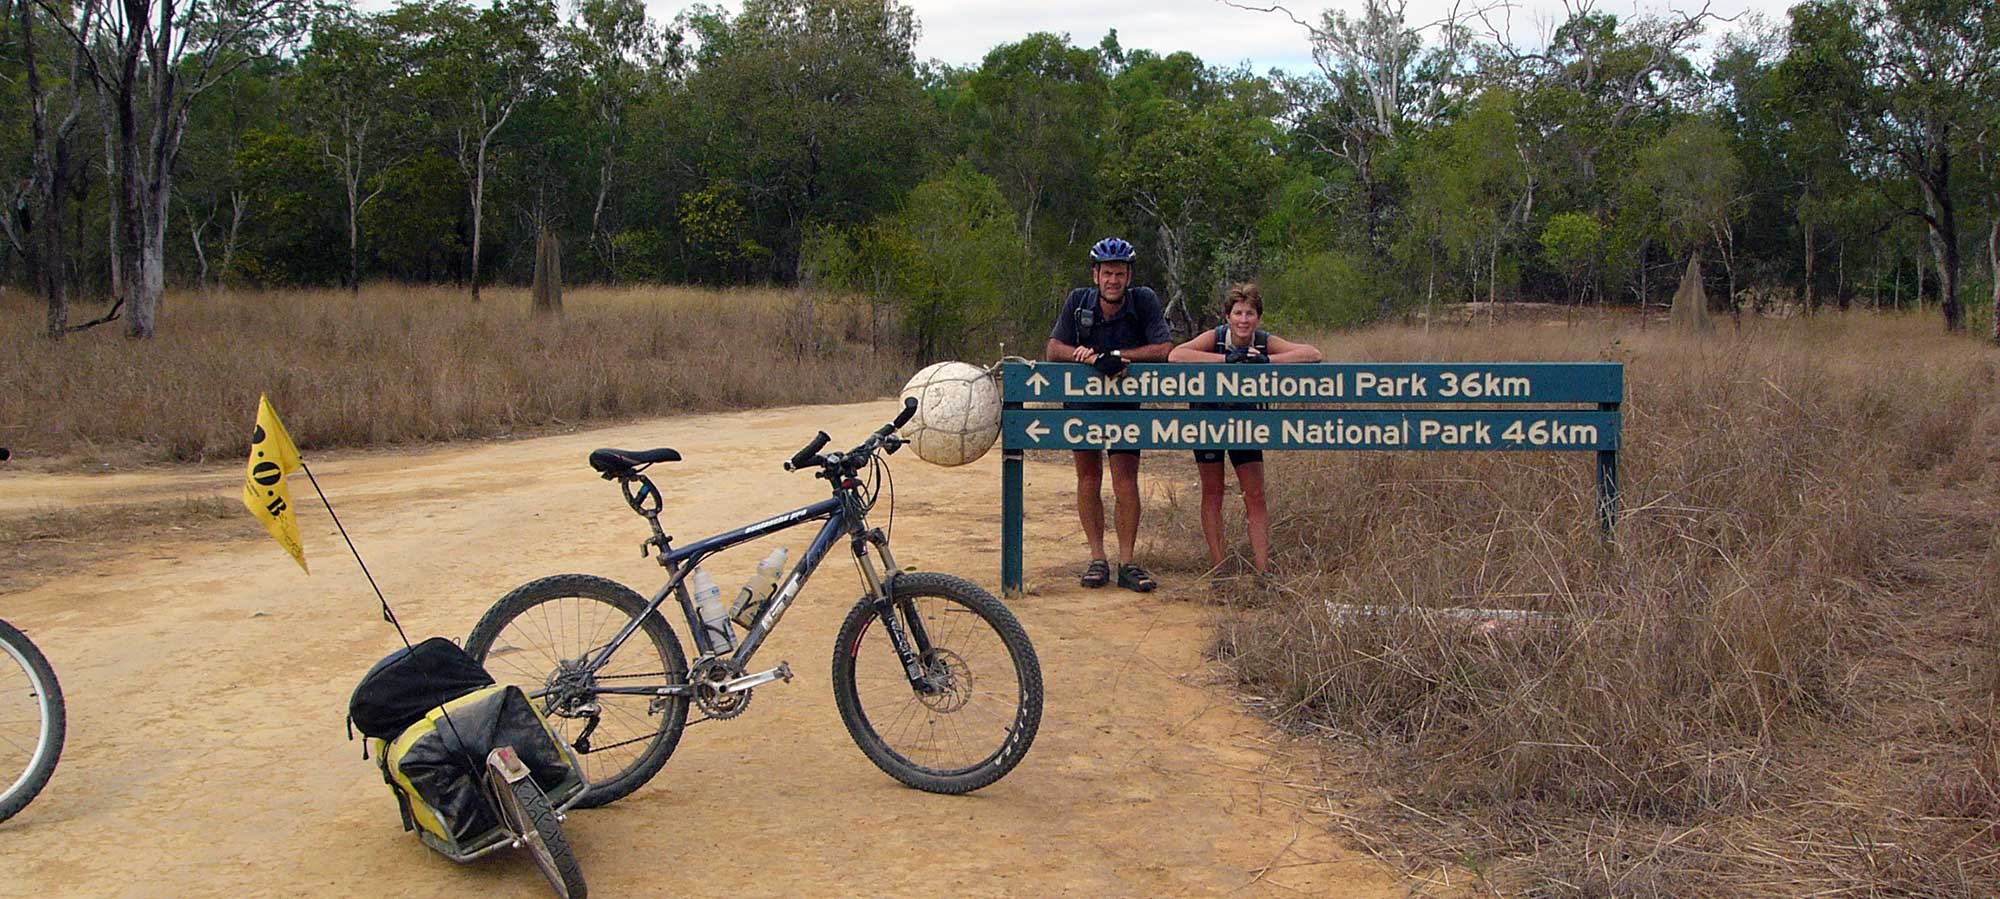 Cape Melville and Lakefield